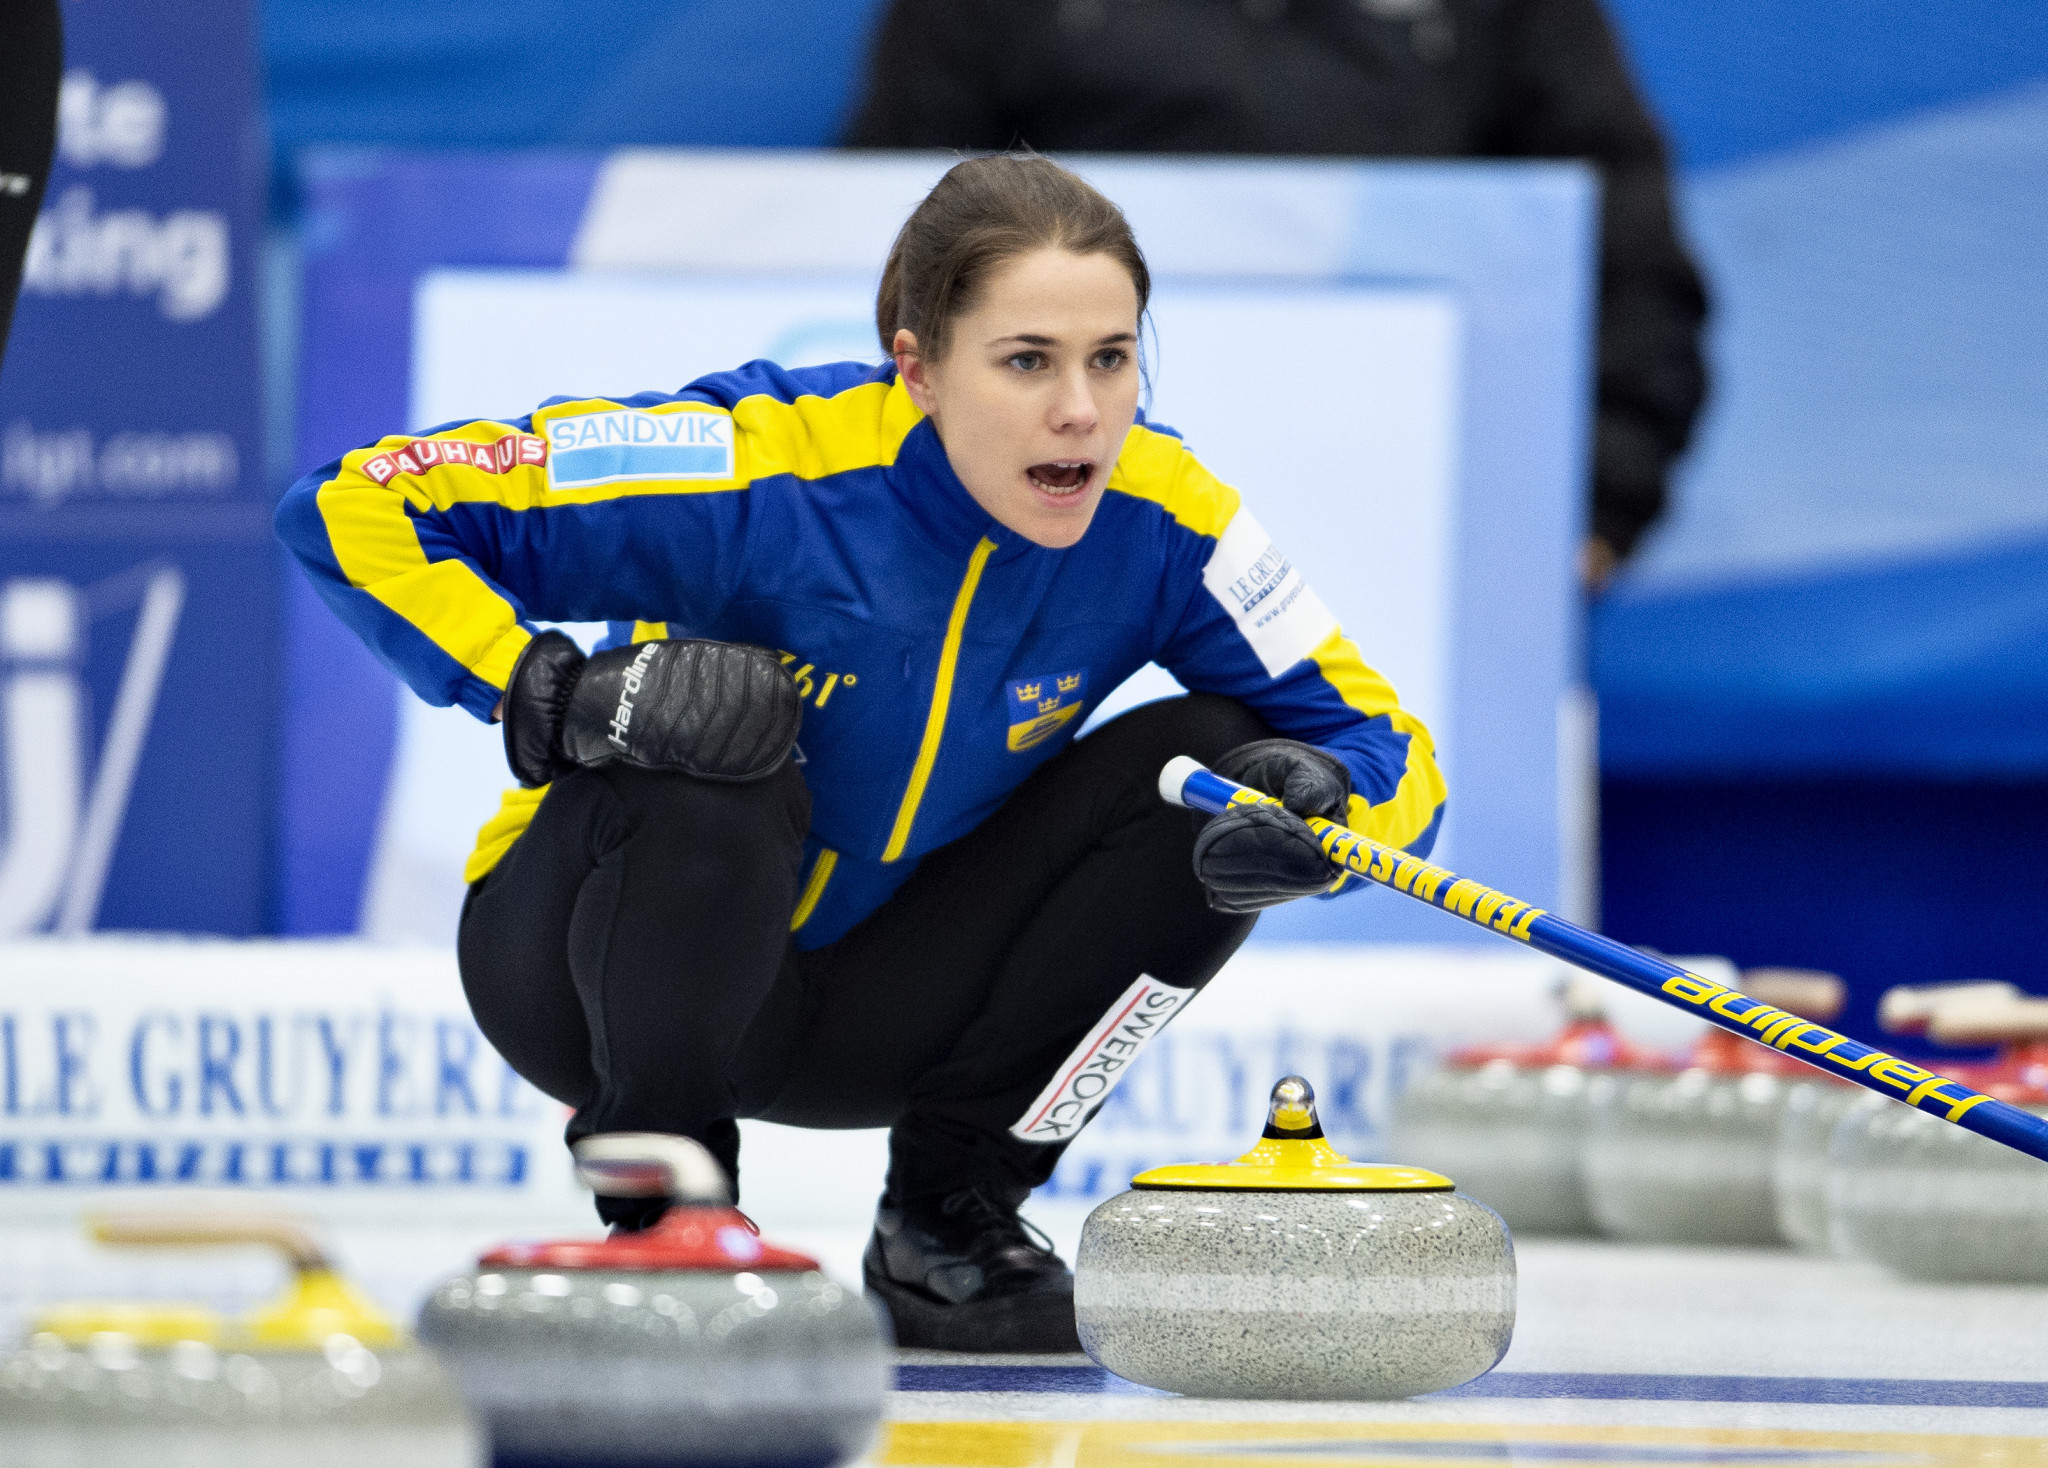 European Curling Championships to begin in Helsingborg